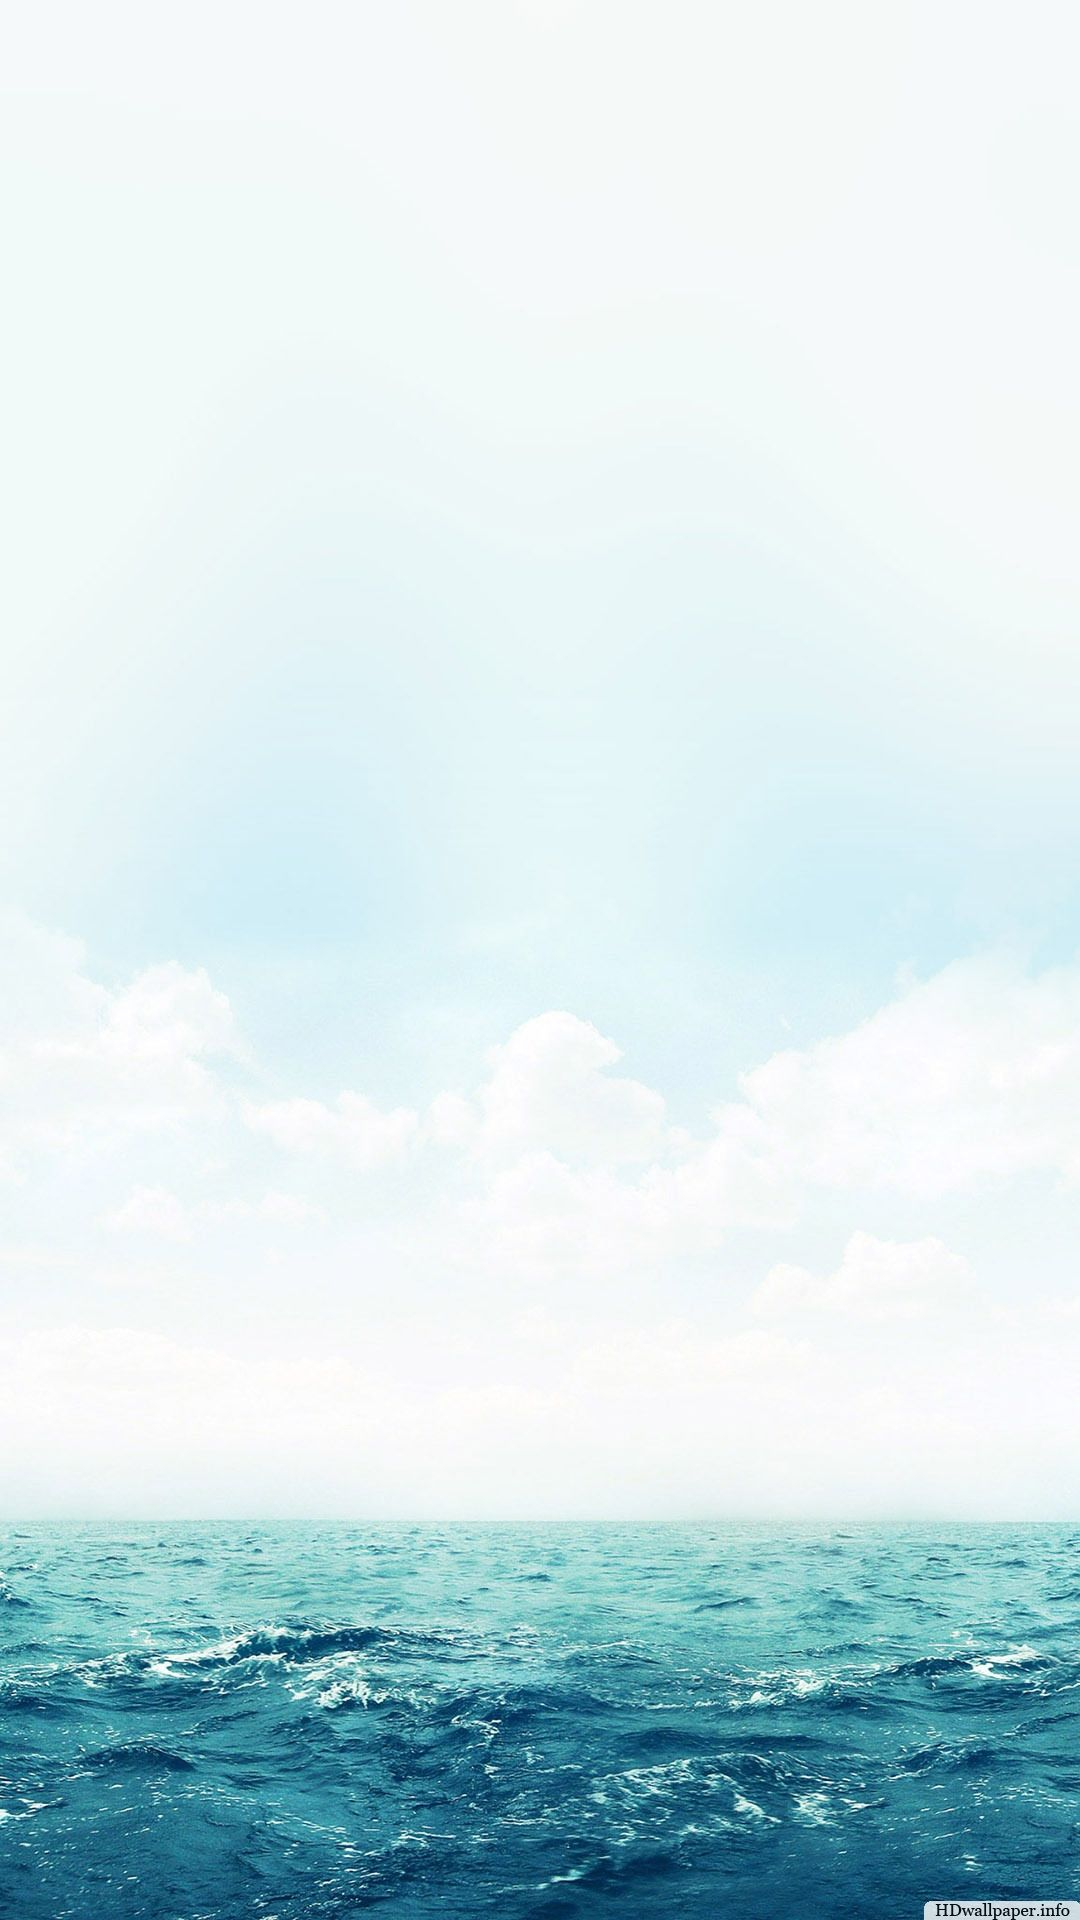 Tumblr iphone wallpaper sky - Iphone Wallpaper Tumblr Google Search